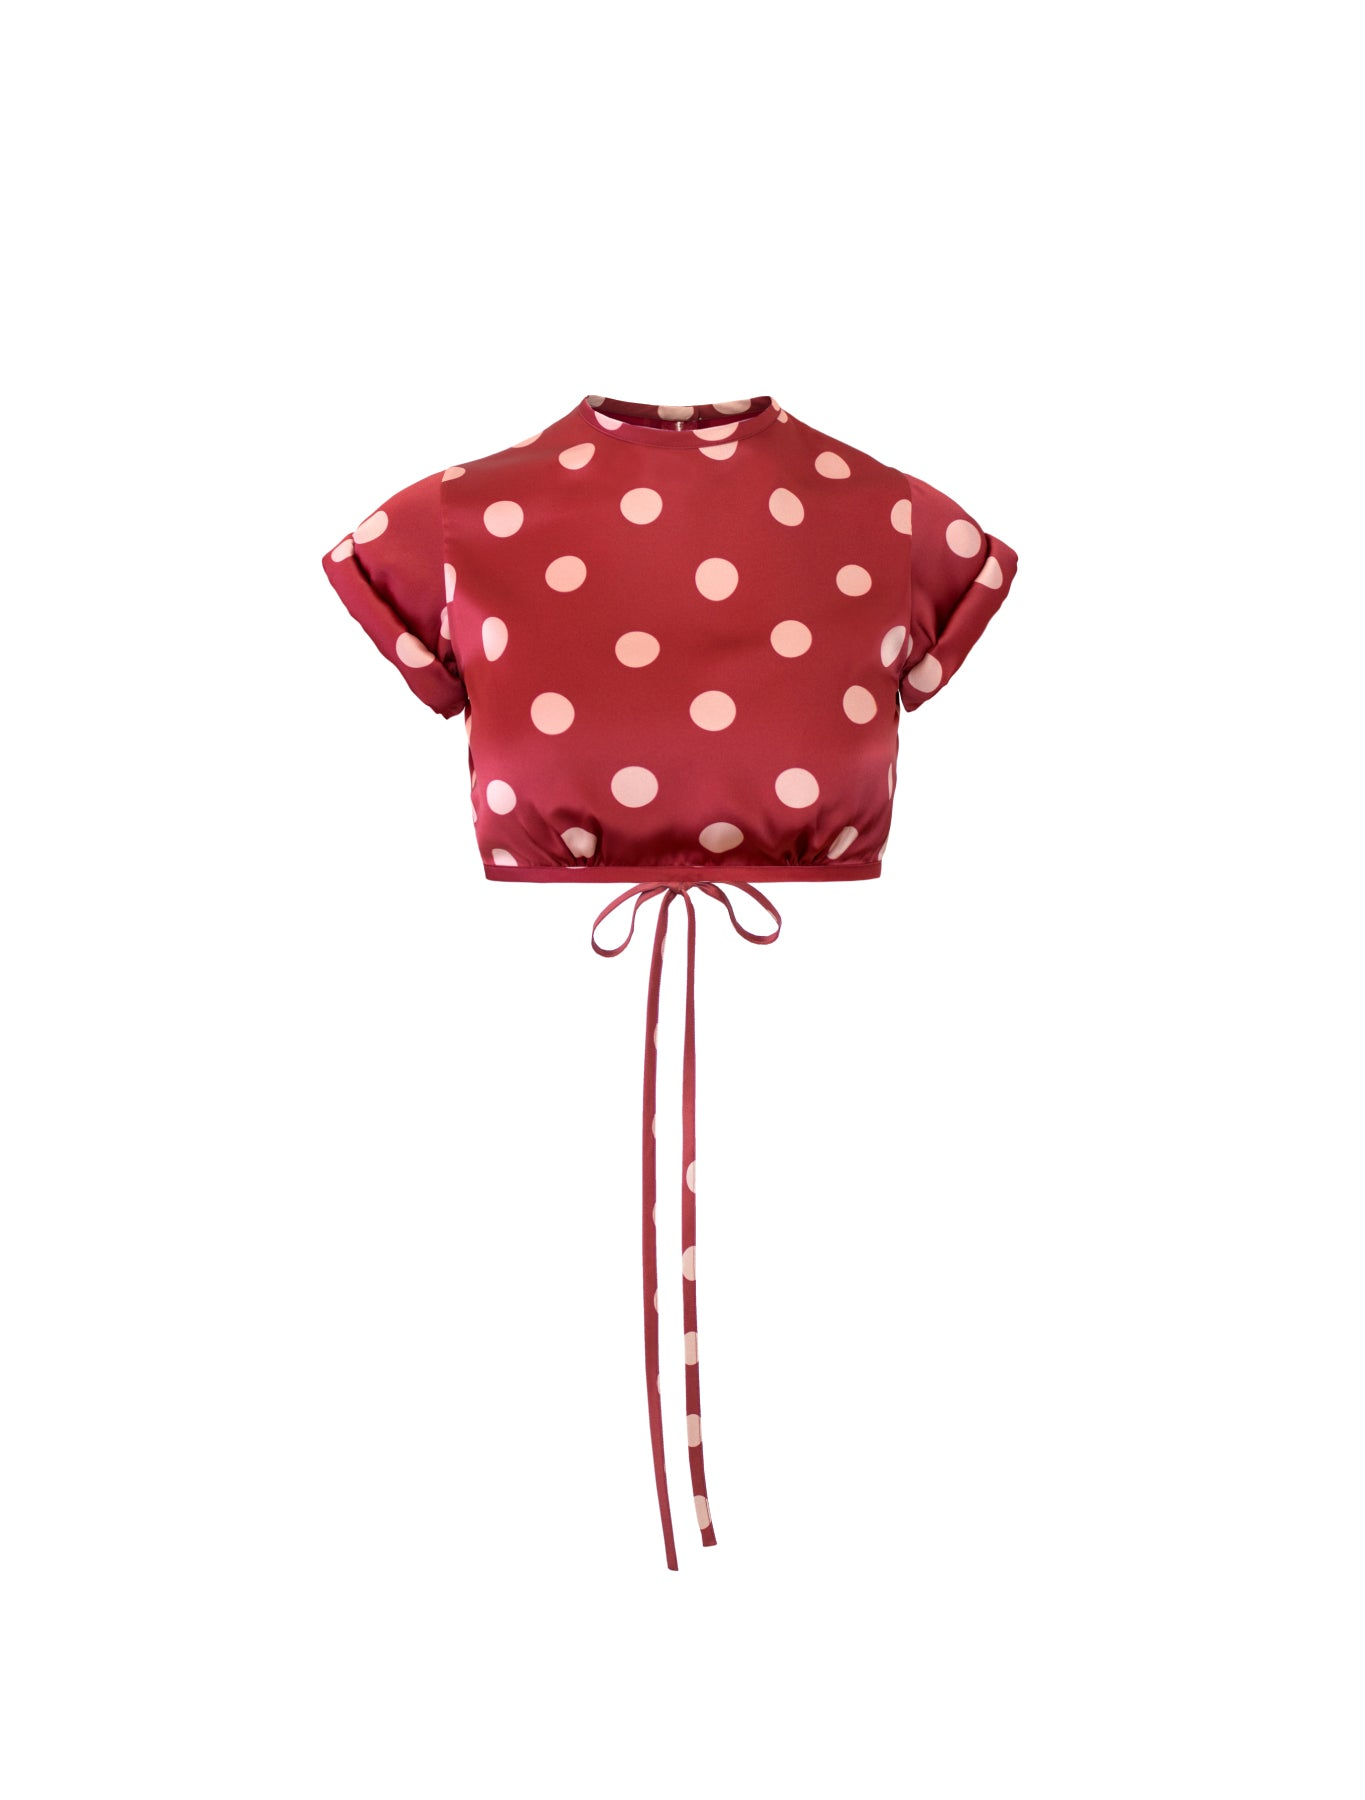 EXCLUSIVE LE CLUB POLKA DOT RED/PINK